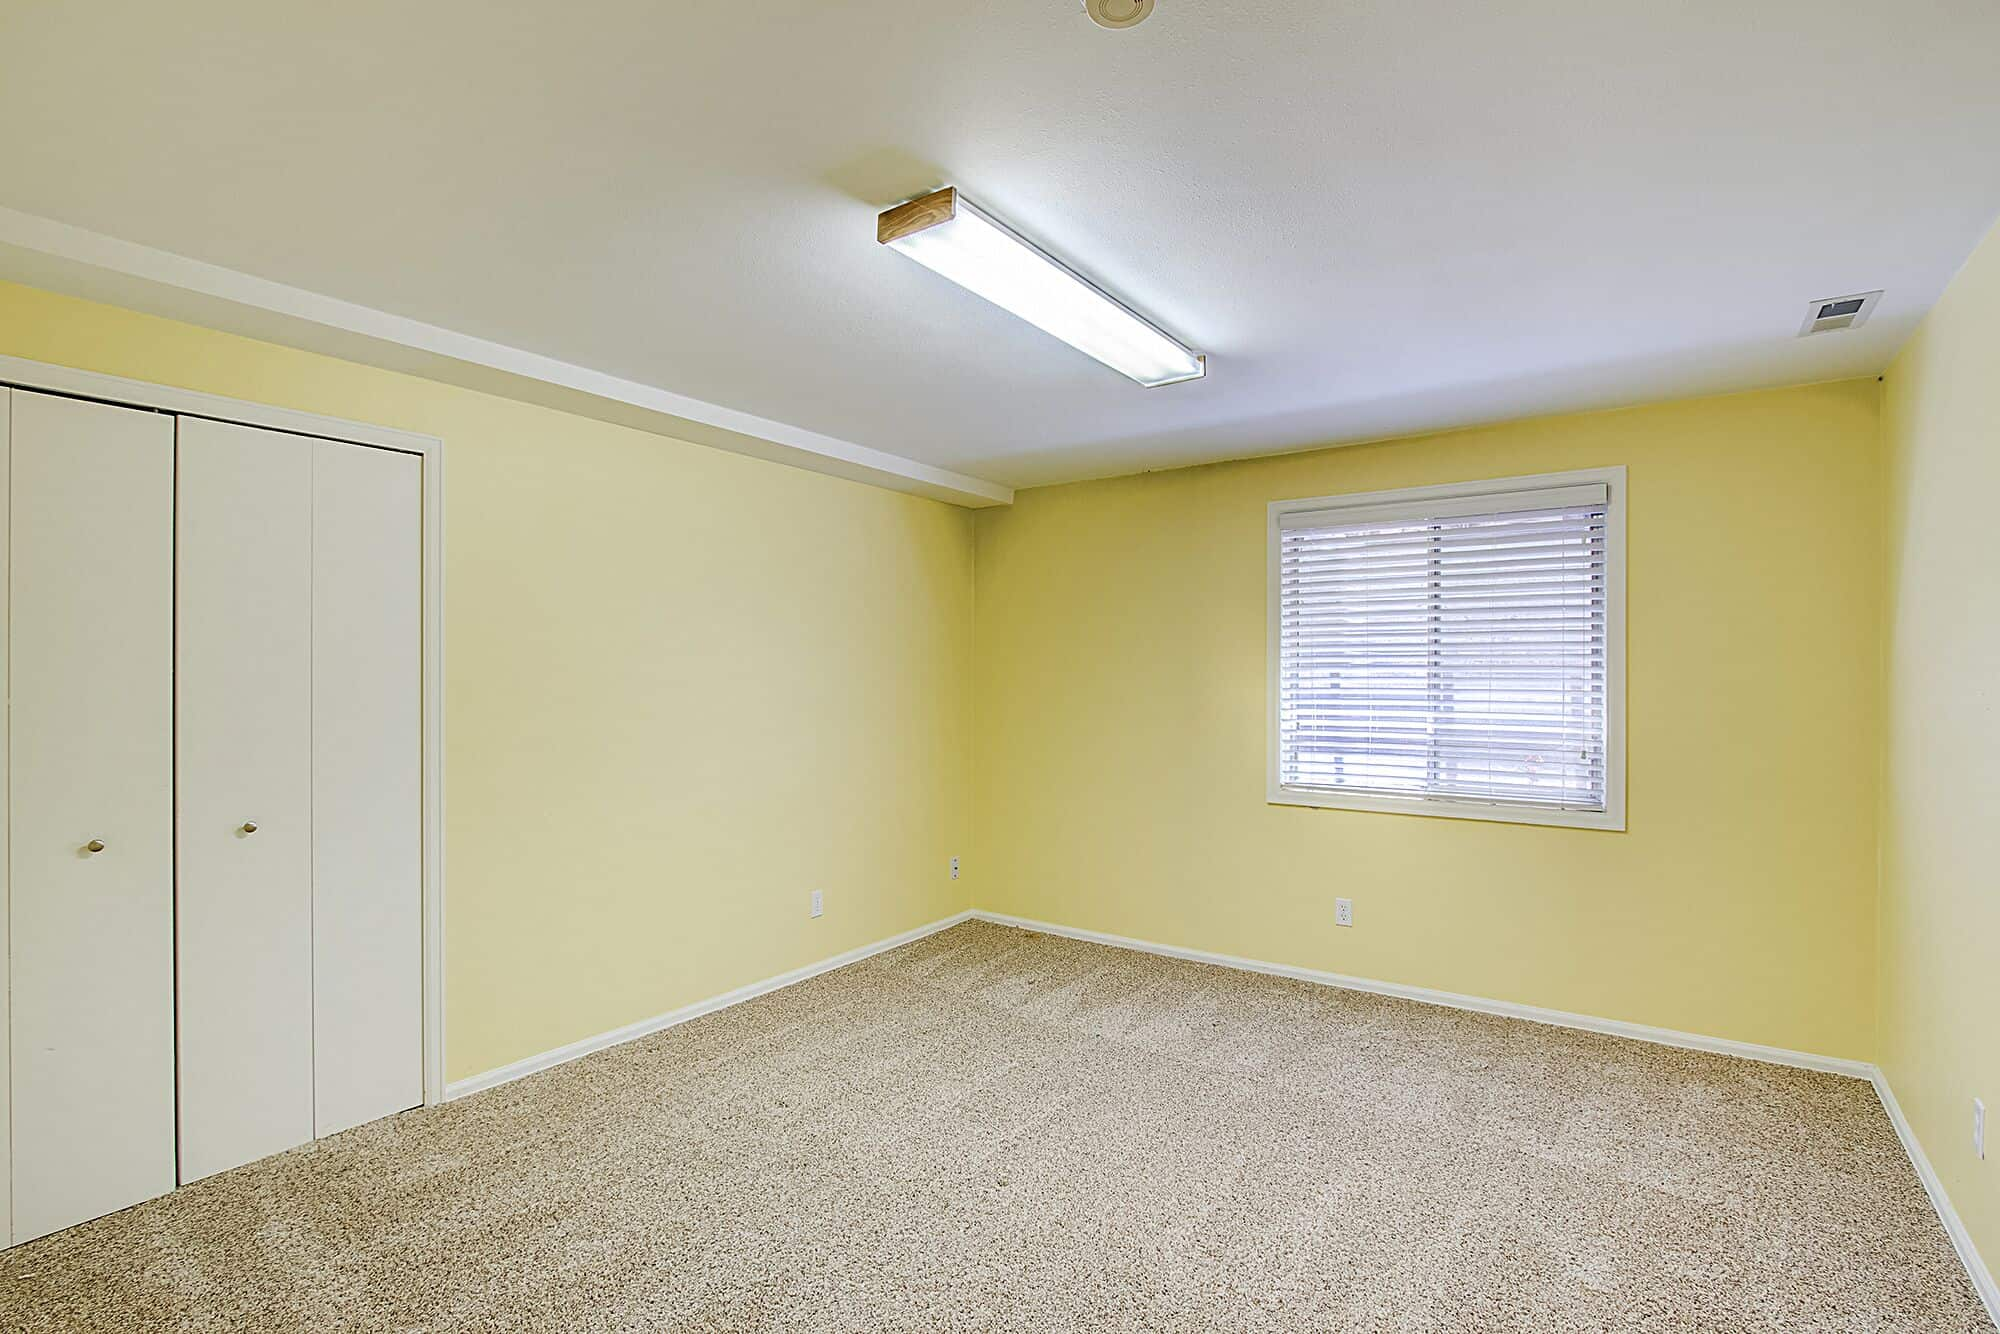 Basement Bedroom 4